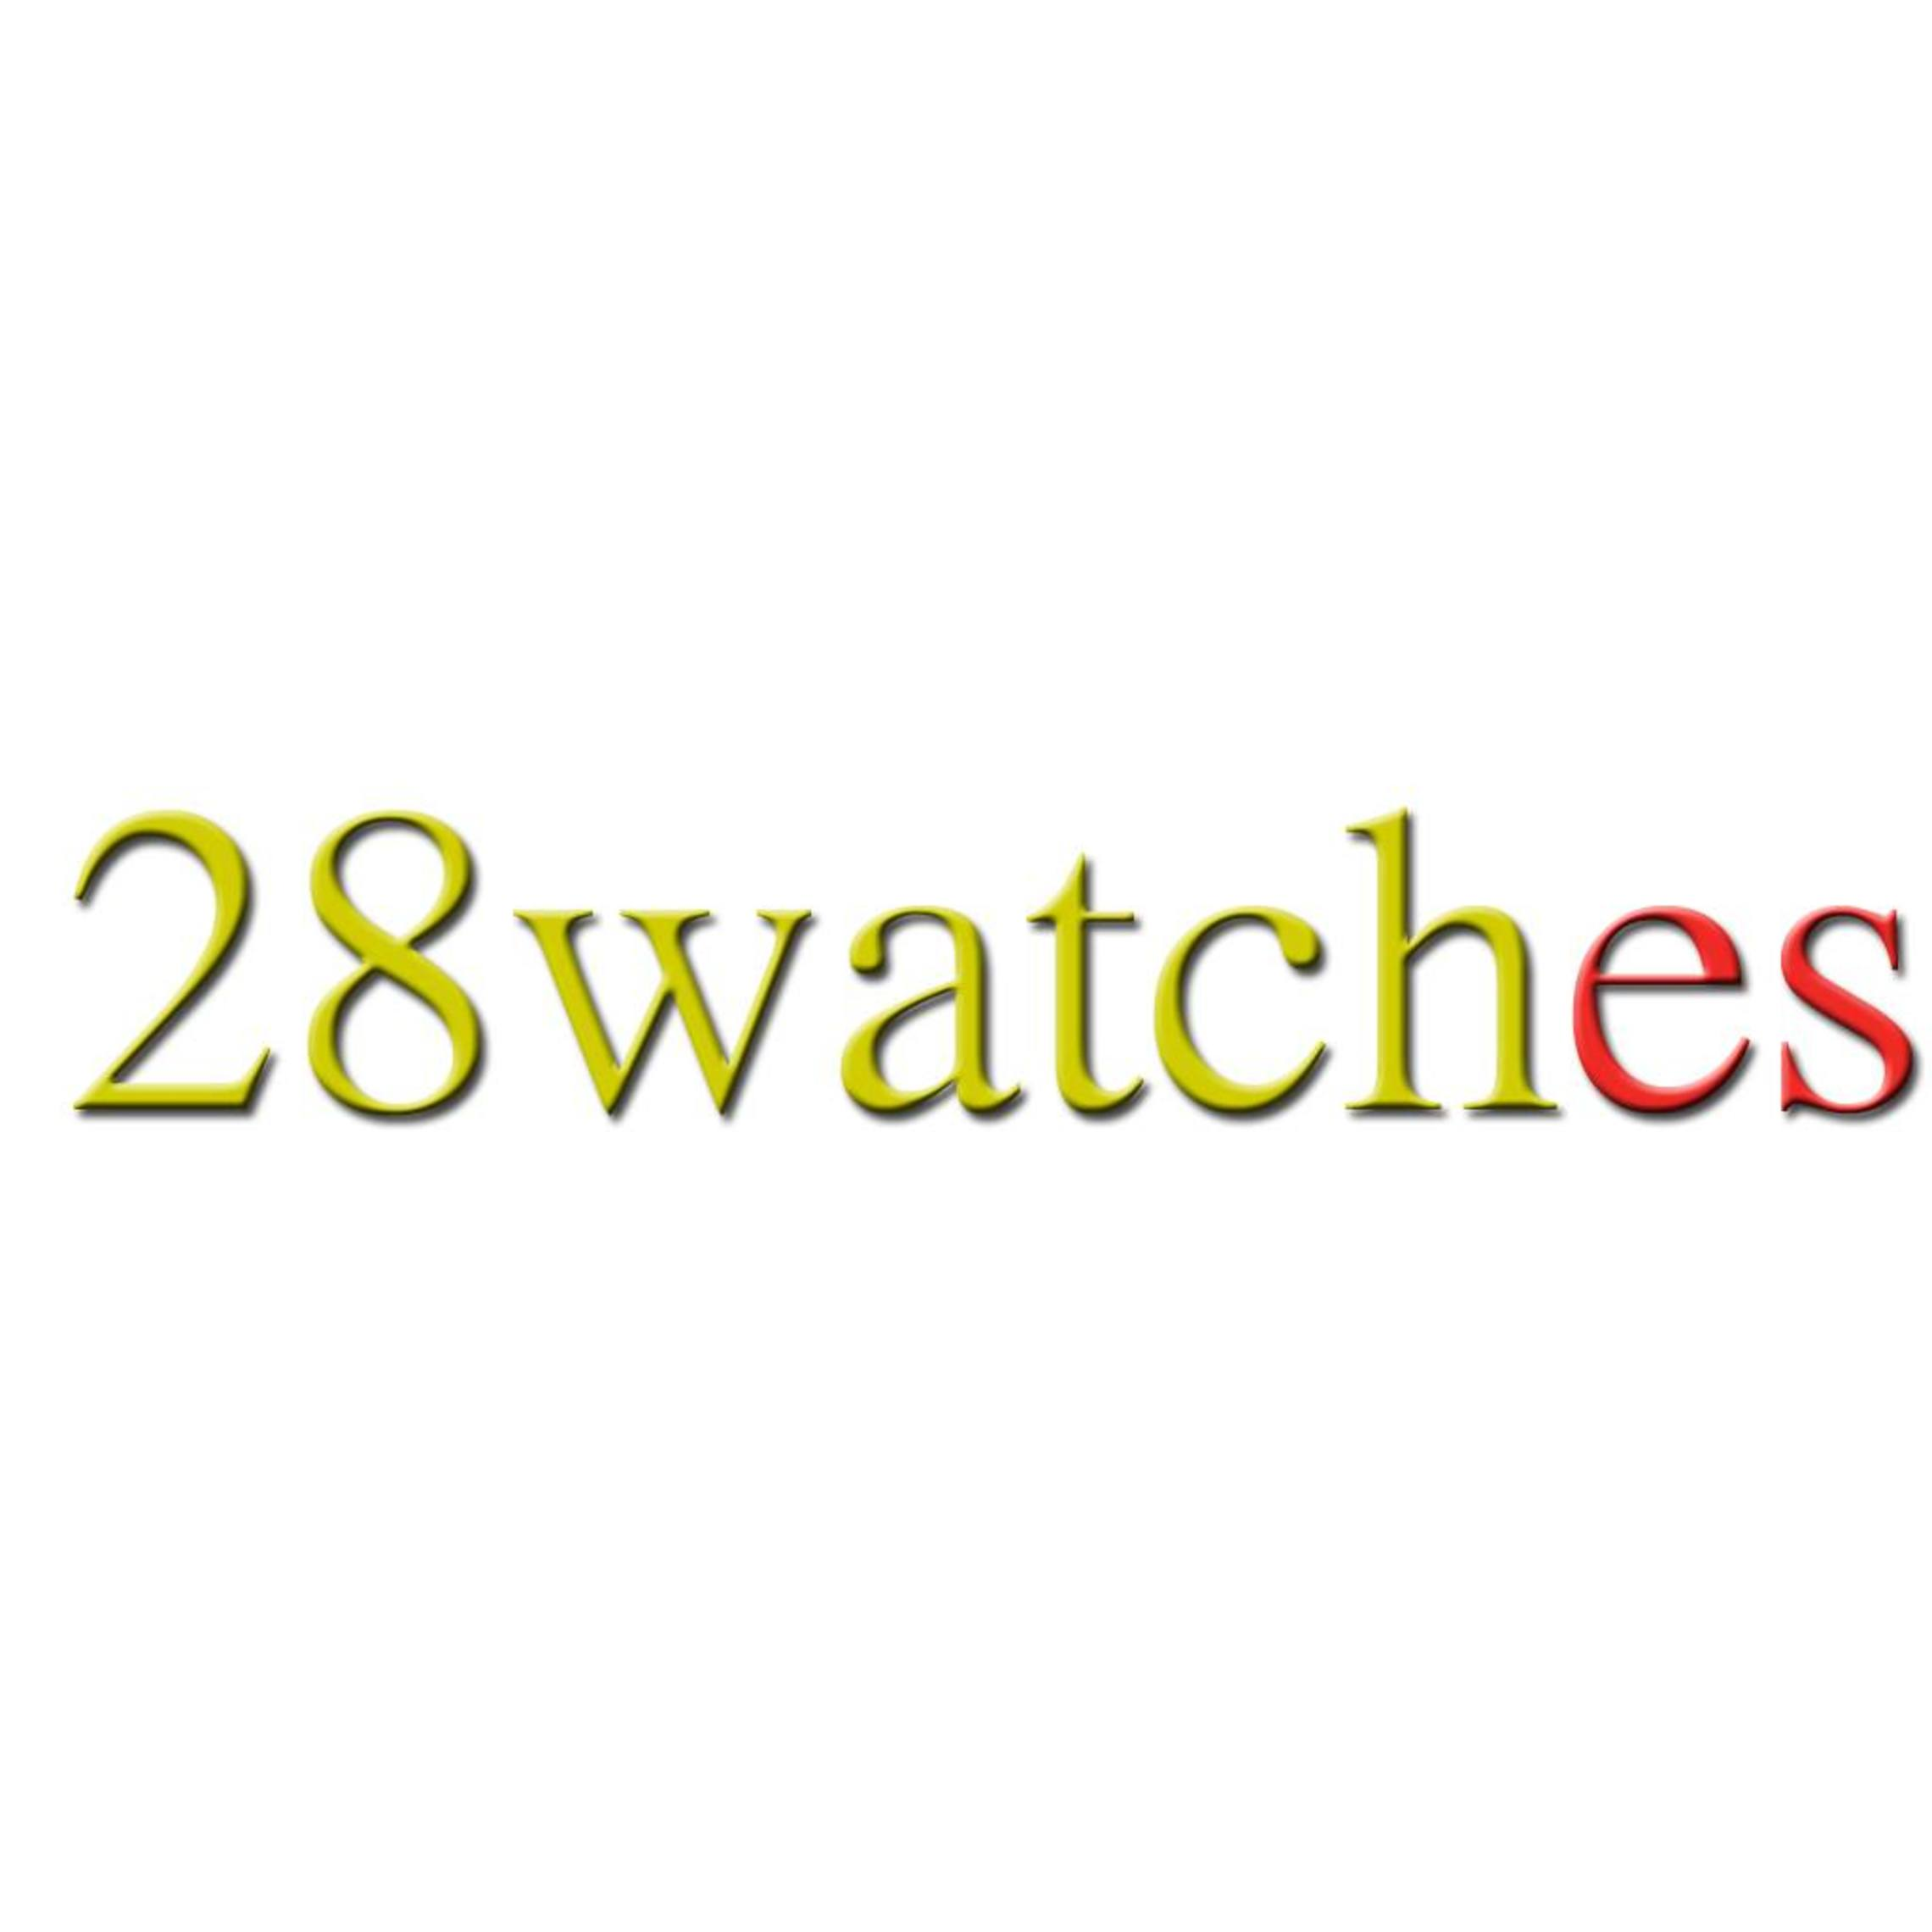 28watches- company logo